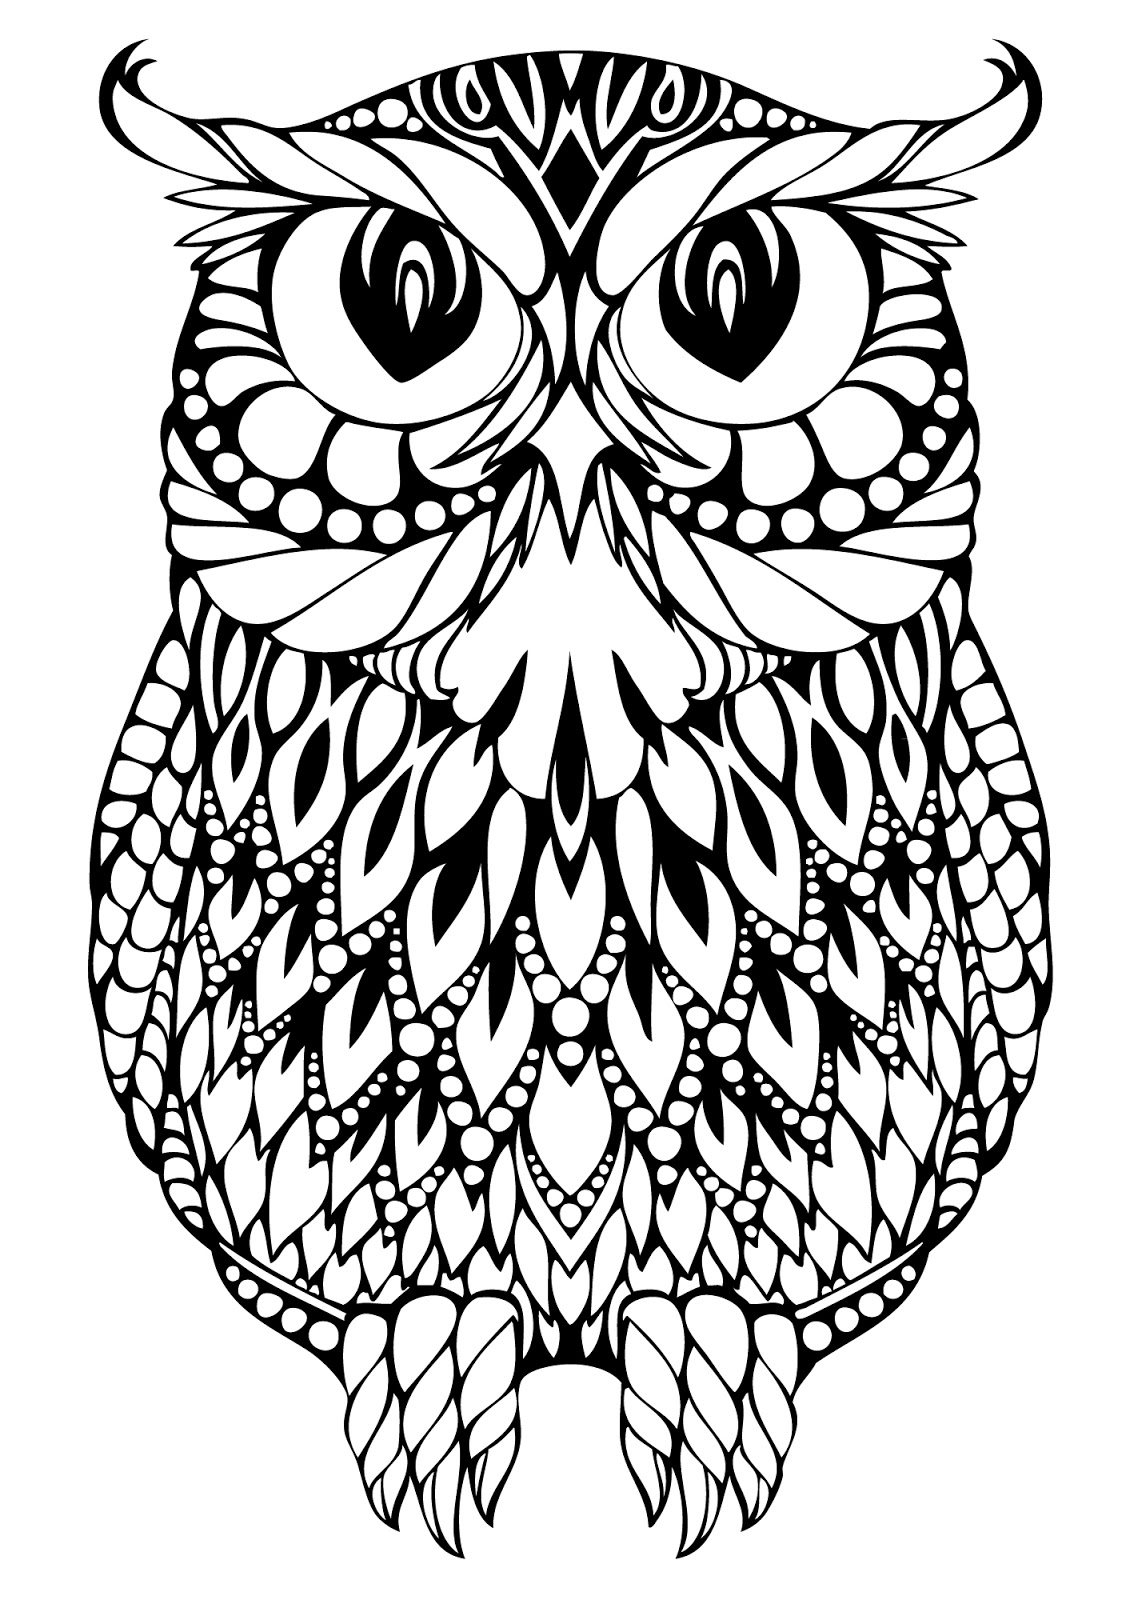 coloring page hard hard design coloring pages coloring pages for kids hard coloring page